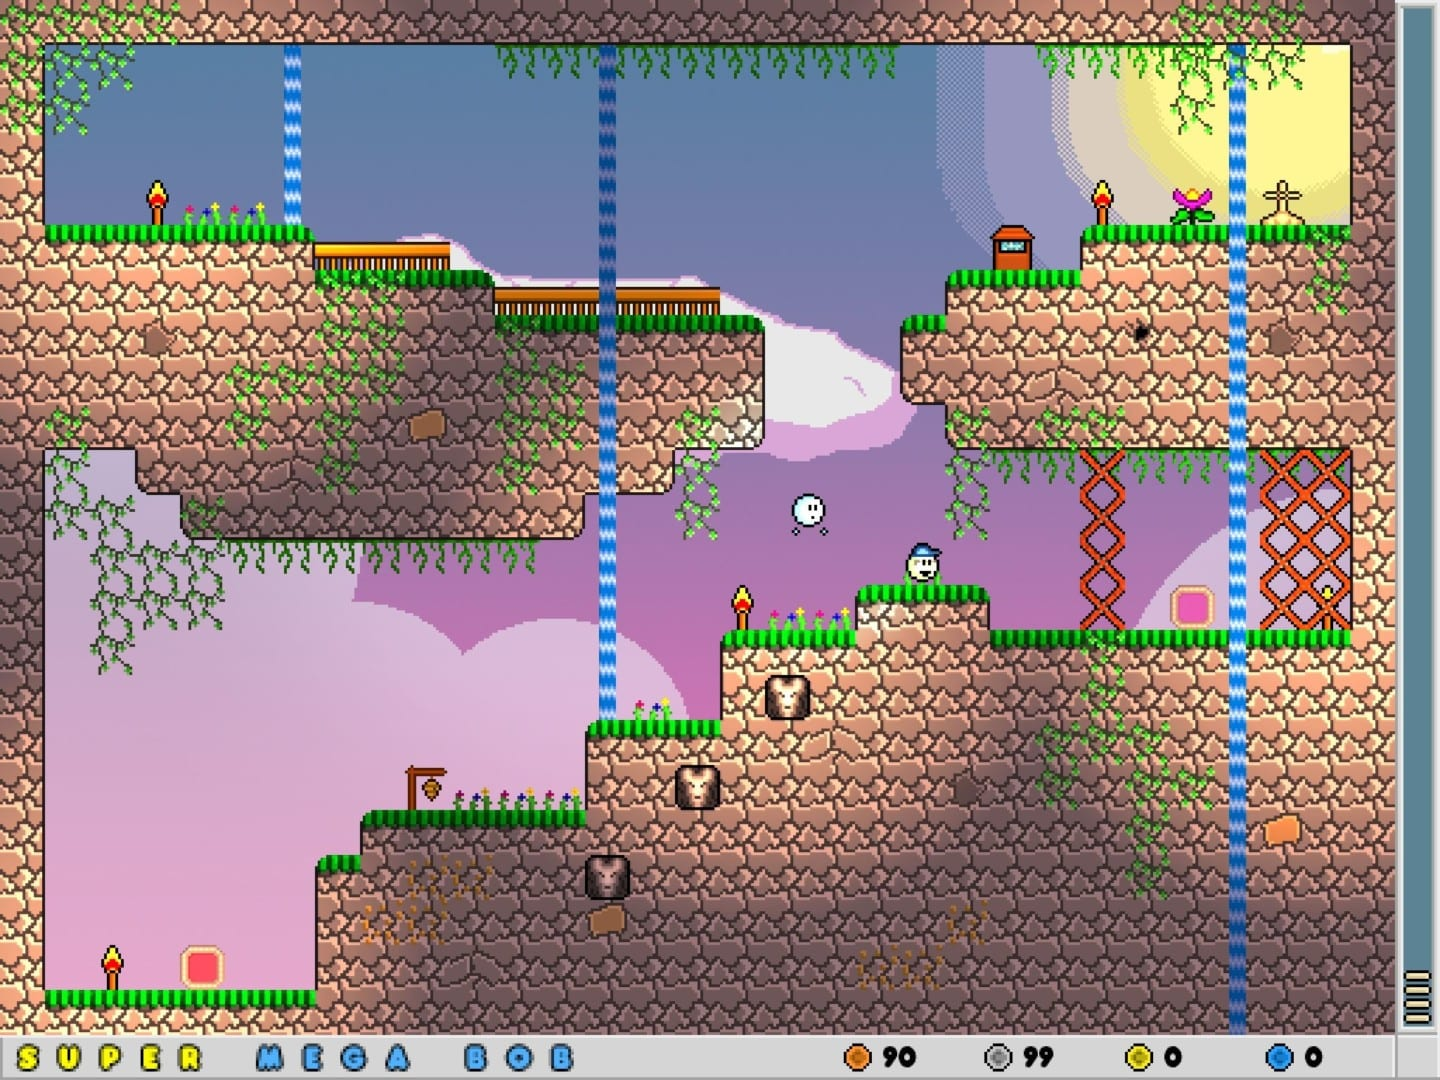 Super Mega Bob Beta 0.2 Featured in Desura's 'Freedom Friday'!